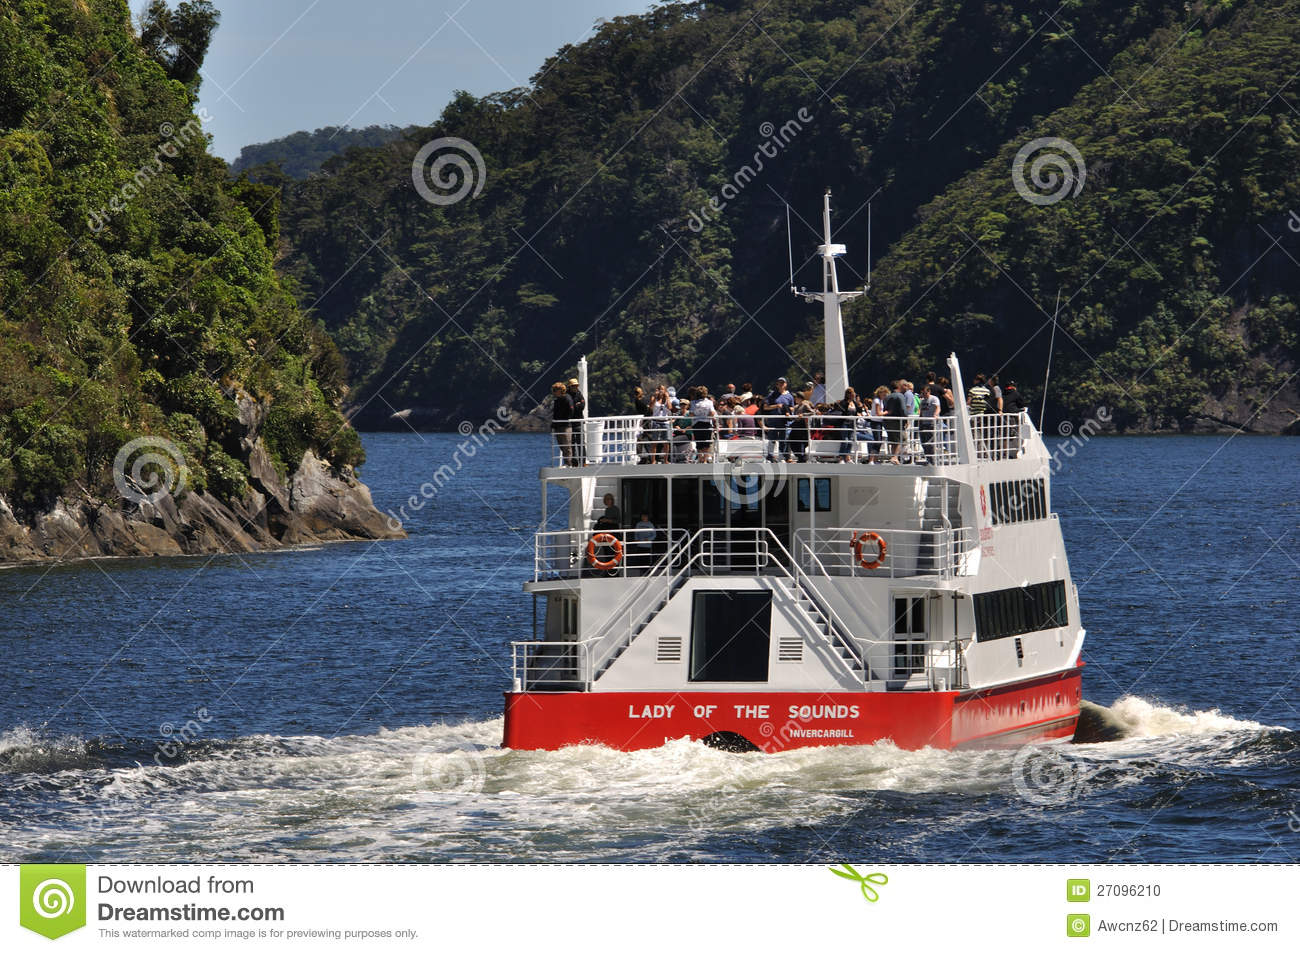 Tourist launch at Milford Sound, New Zealand